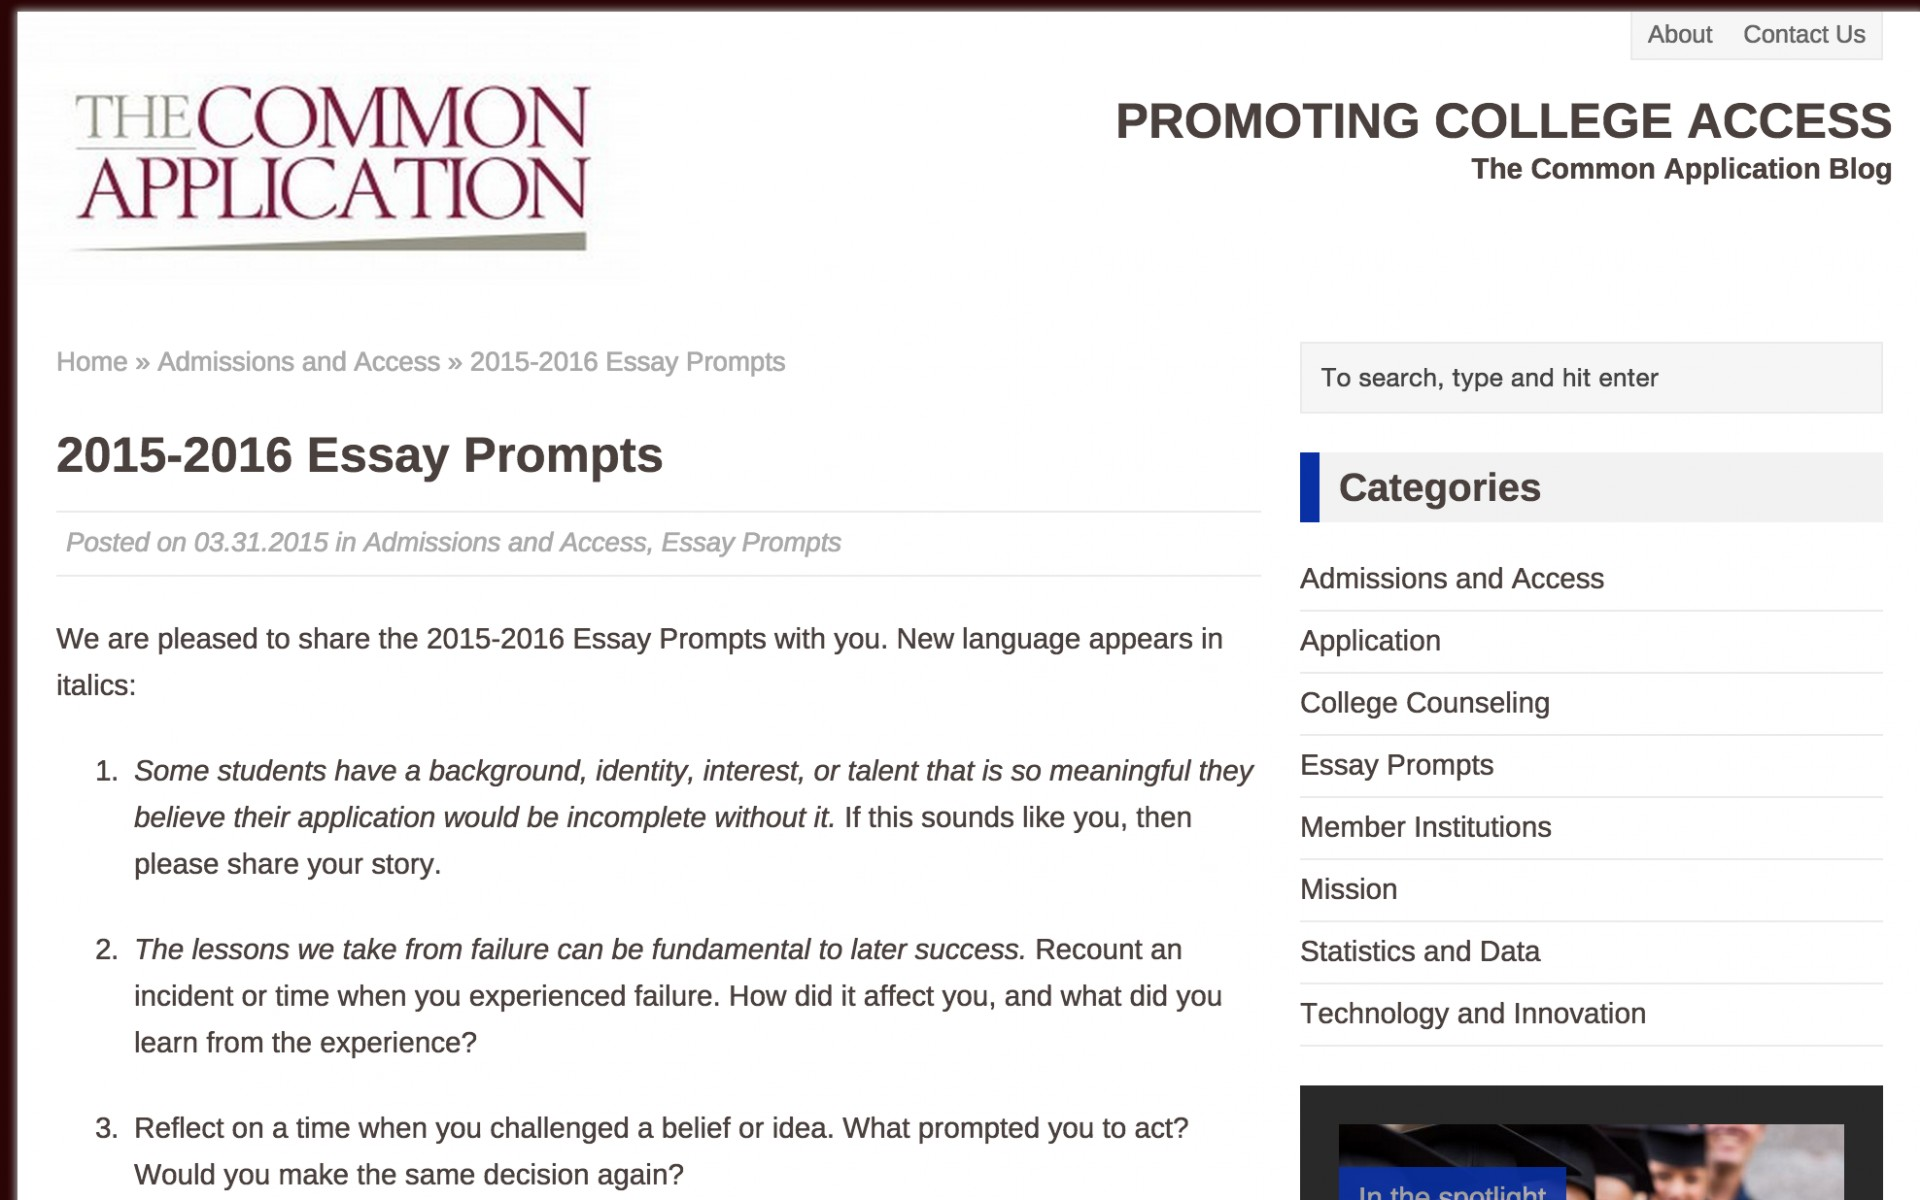 001 Screen Shot At Pm Common Application Essay Prompts Imposing 2017 App Examples Prompt 6 2015 1920